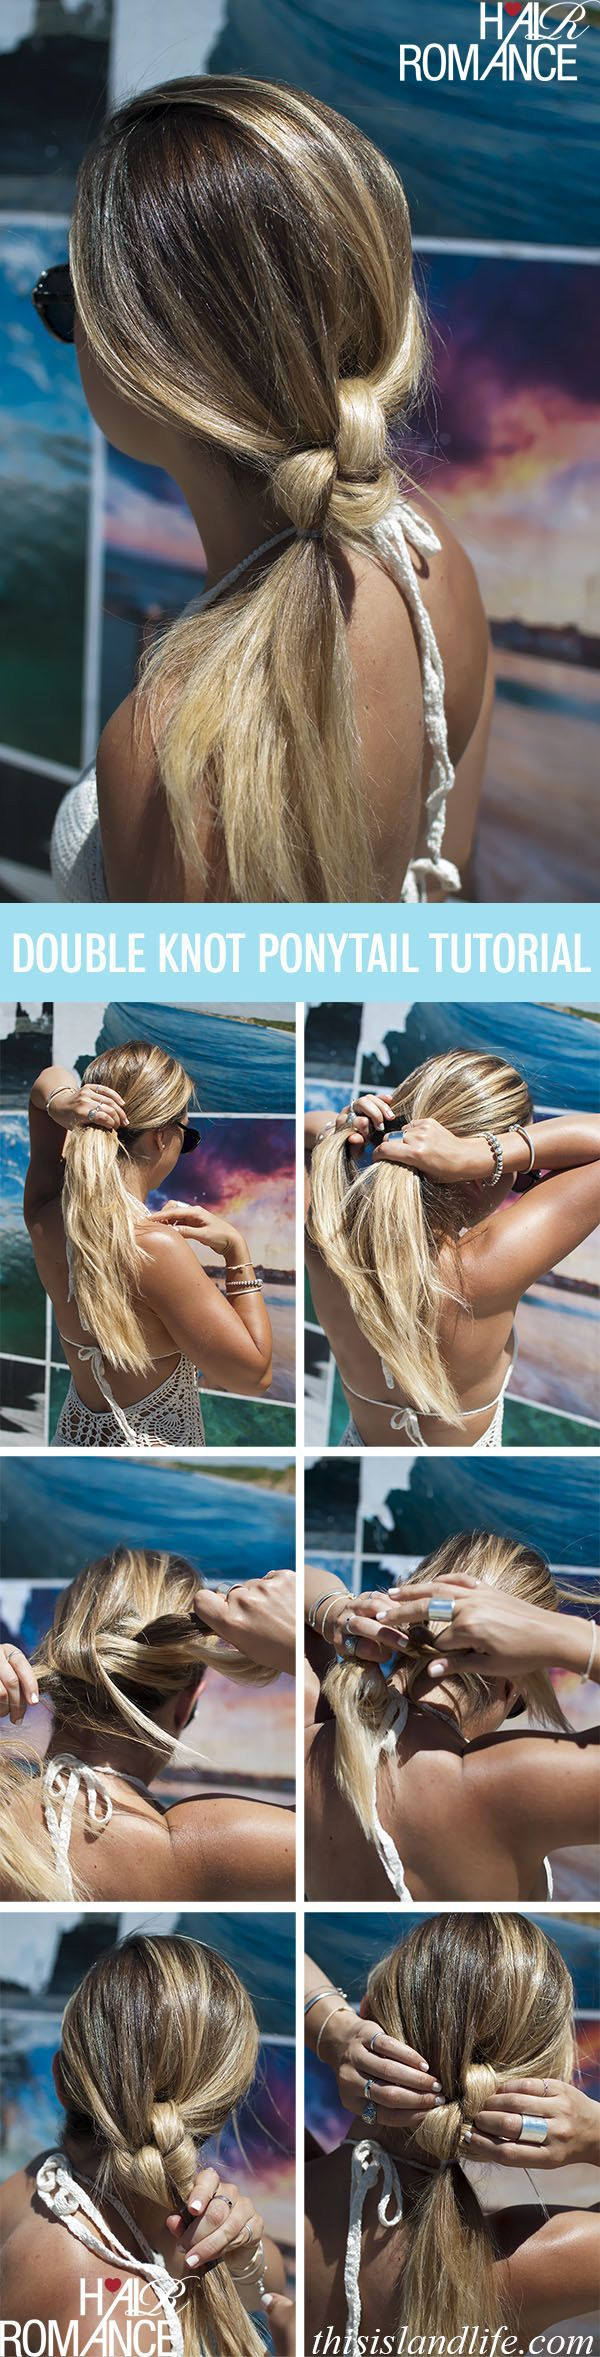 Double Knot Ponitail Hairstyle Tutorial